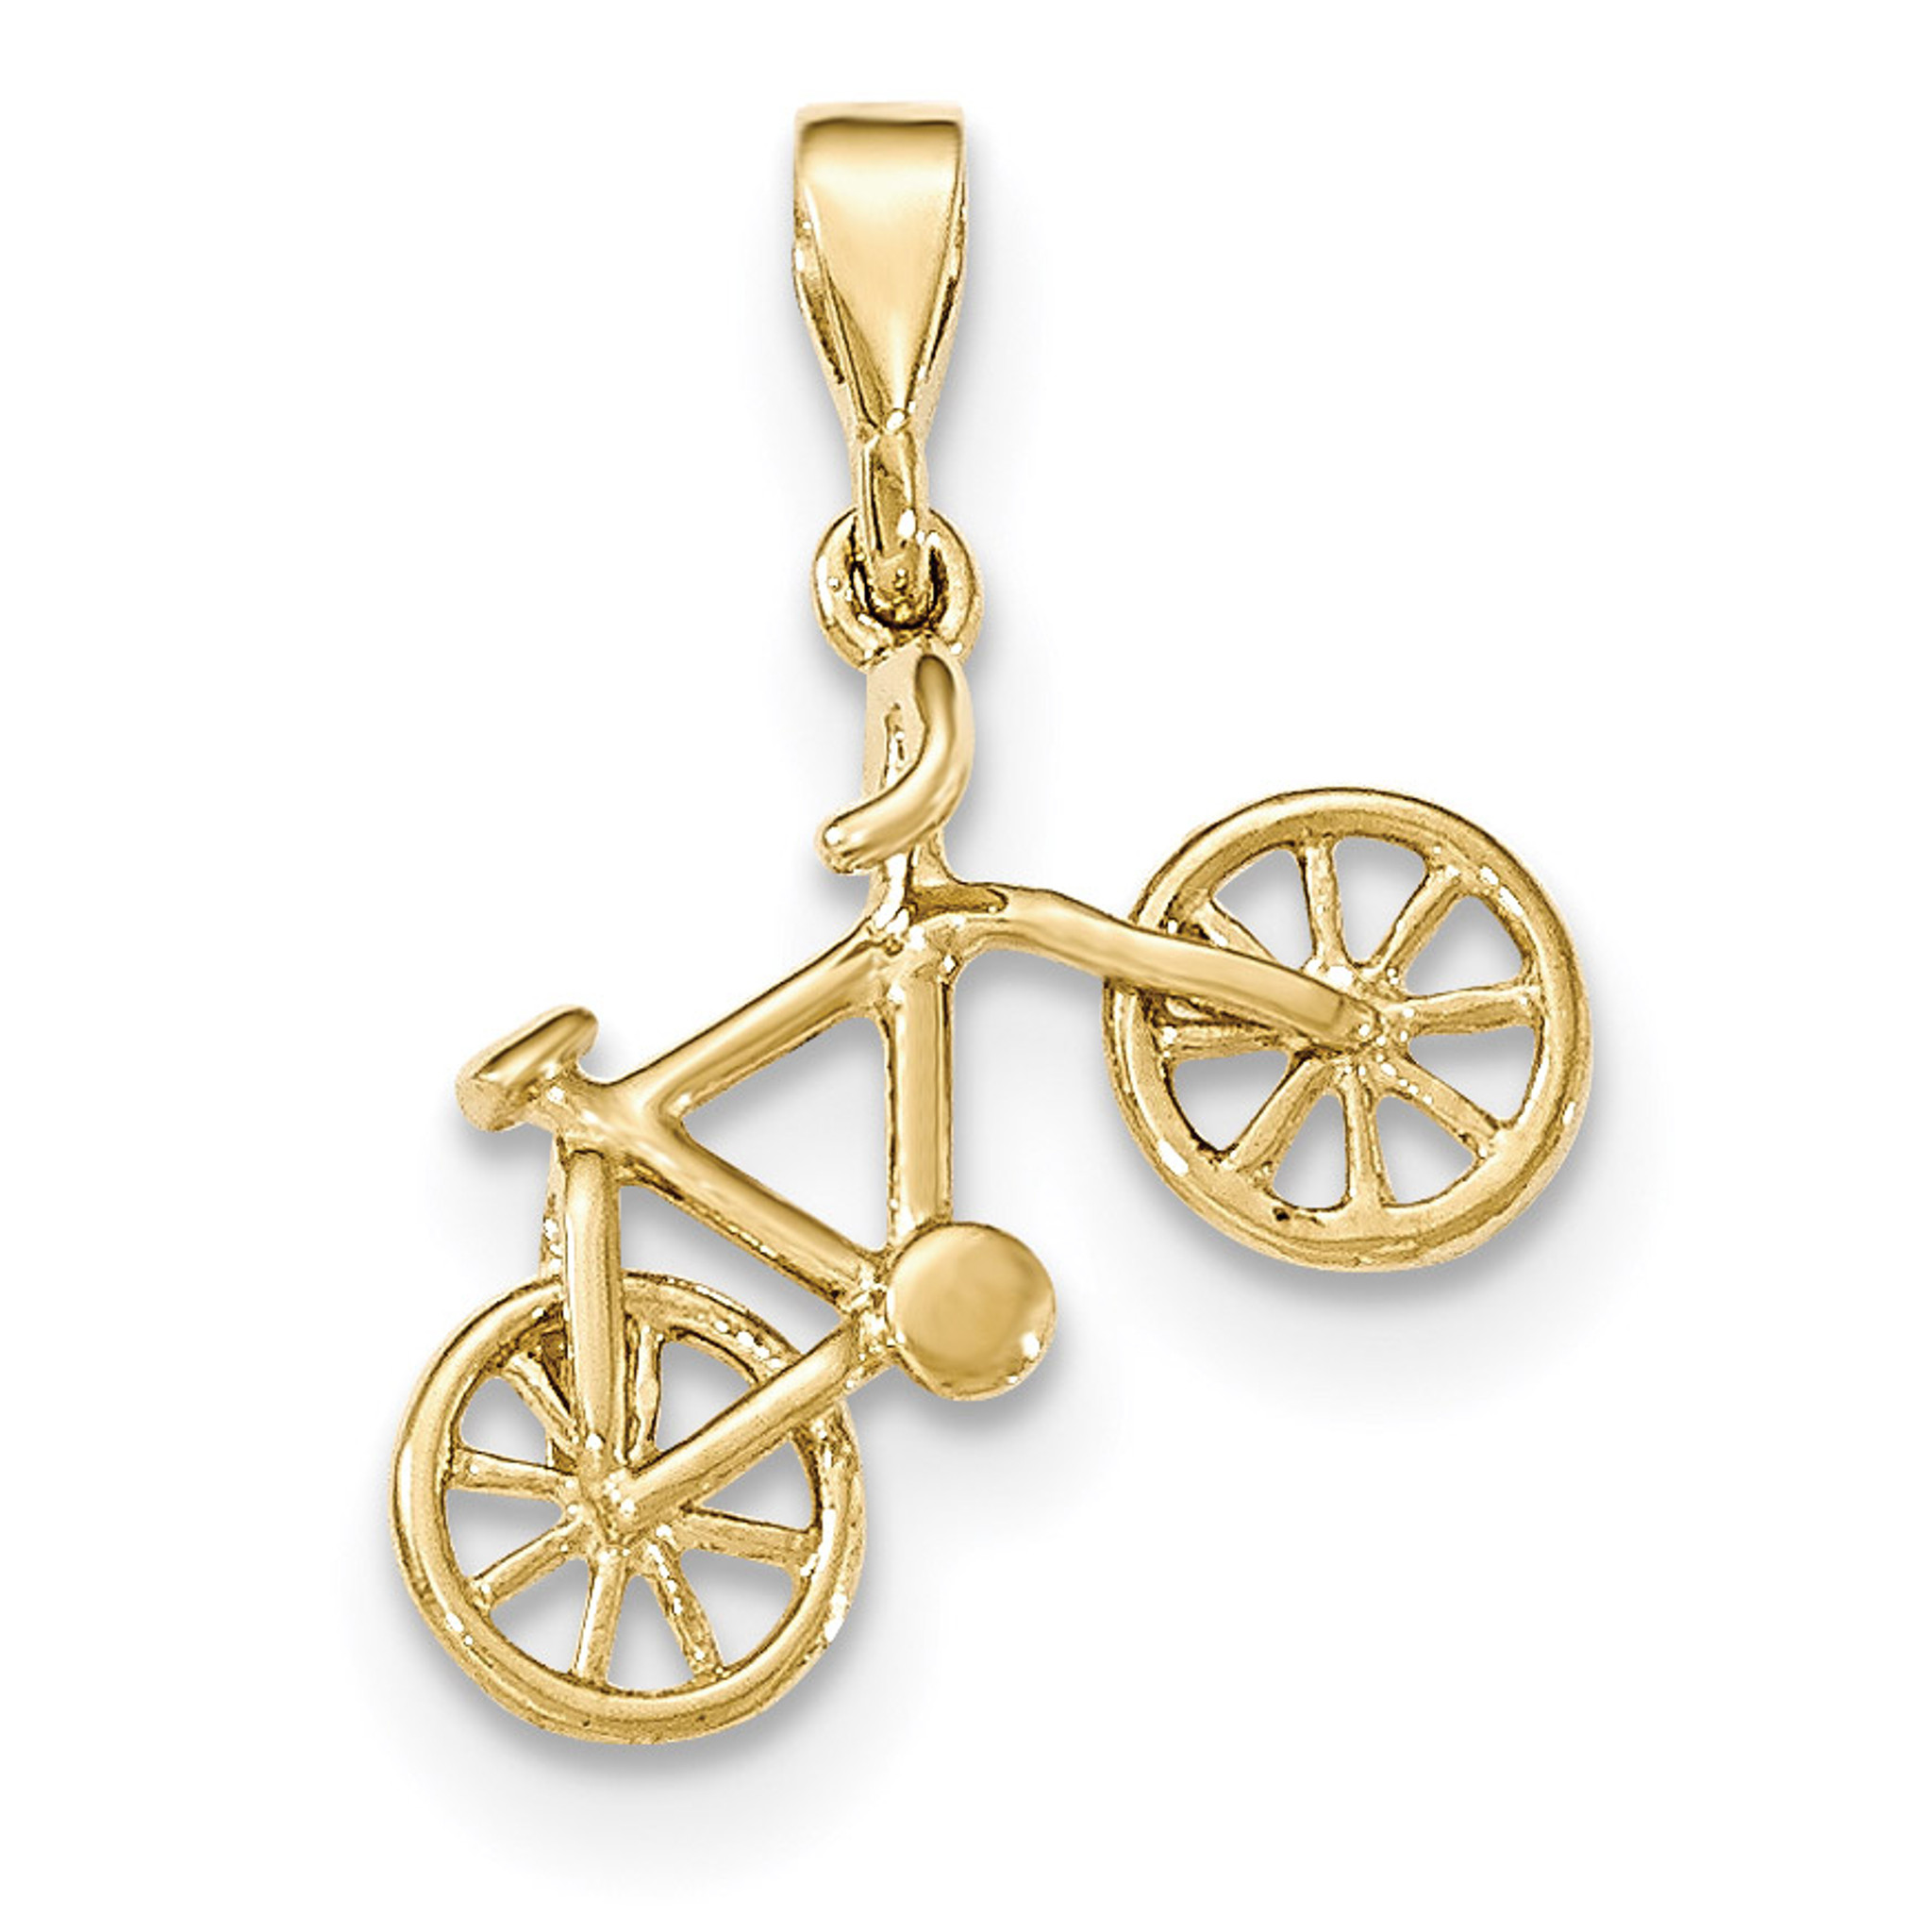 14kt yellow gold polished bicycle pendant 14k gold yc1255 homebello 14kt yellow gold polished bicycle pendant 14k gold mpn yc1255 upc 191101455483 aloadofball Image collections